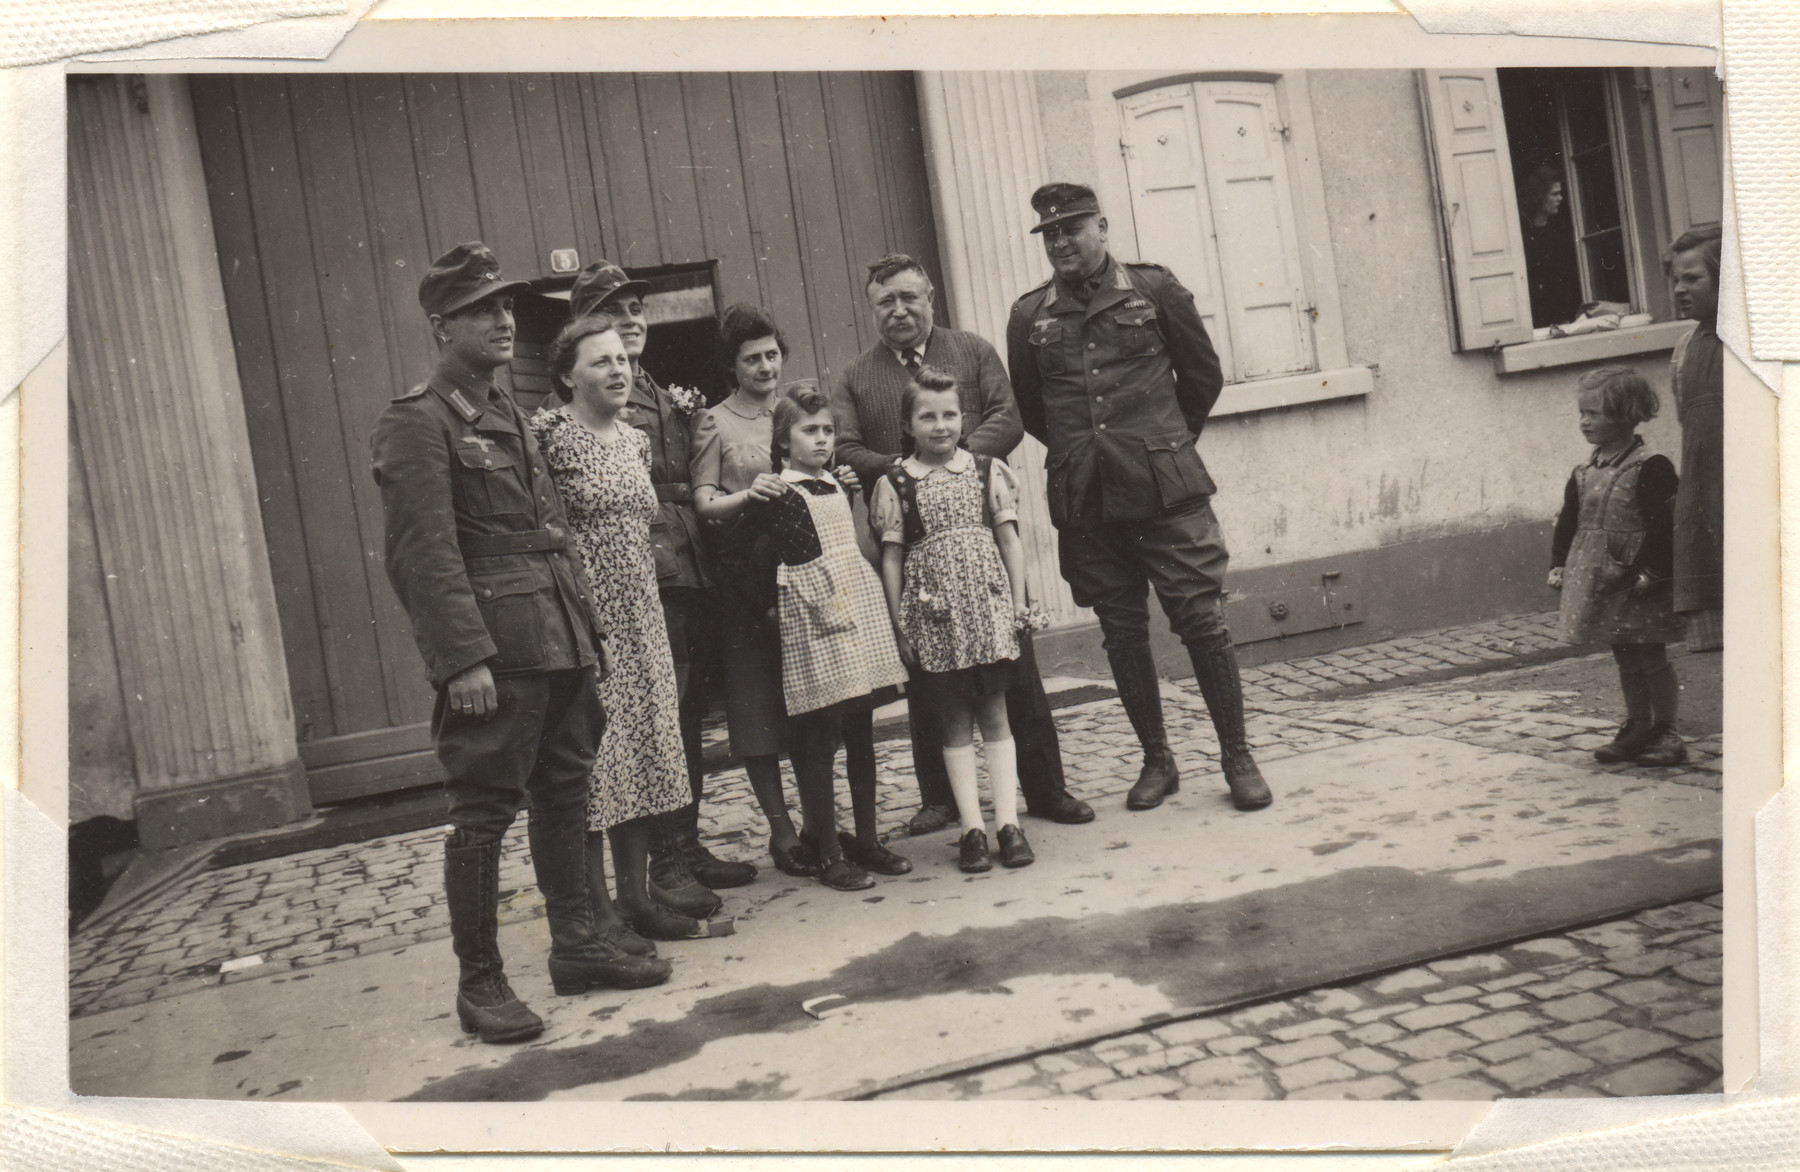 A group of civilians poses next to members of the German army.